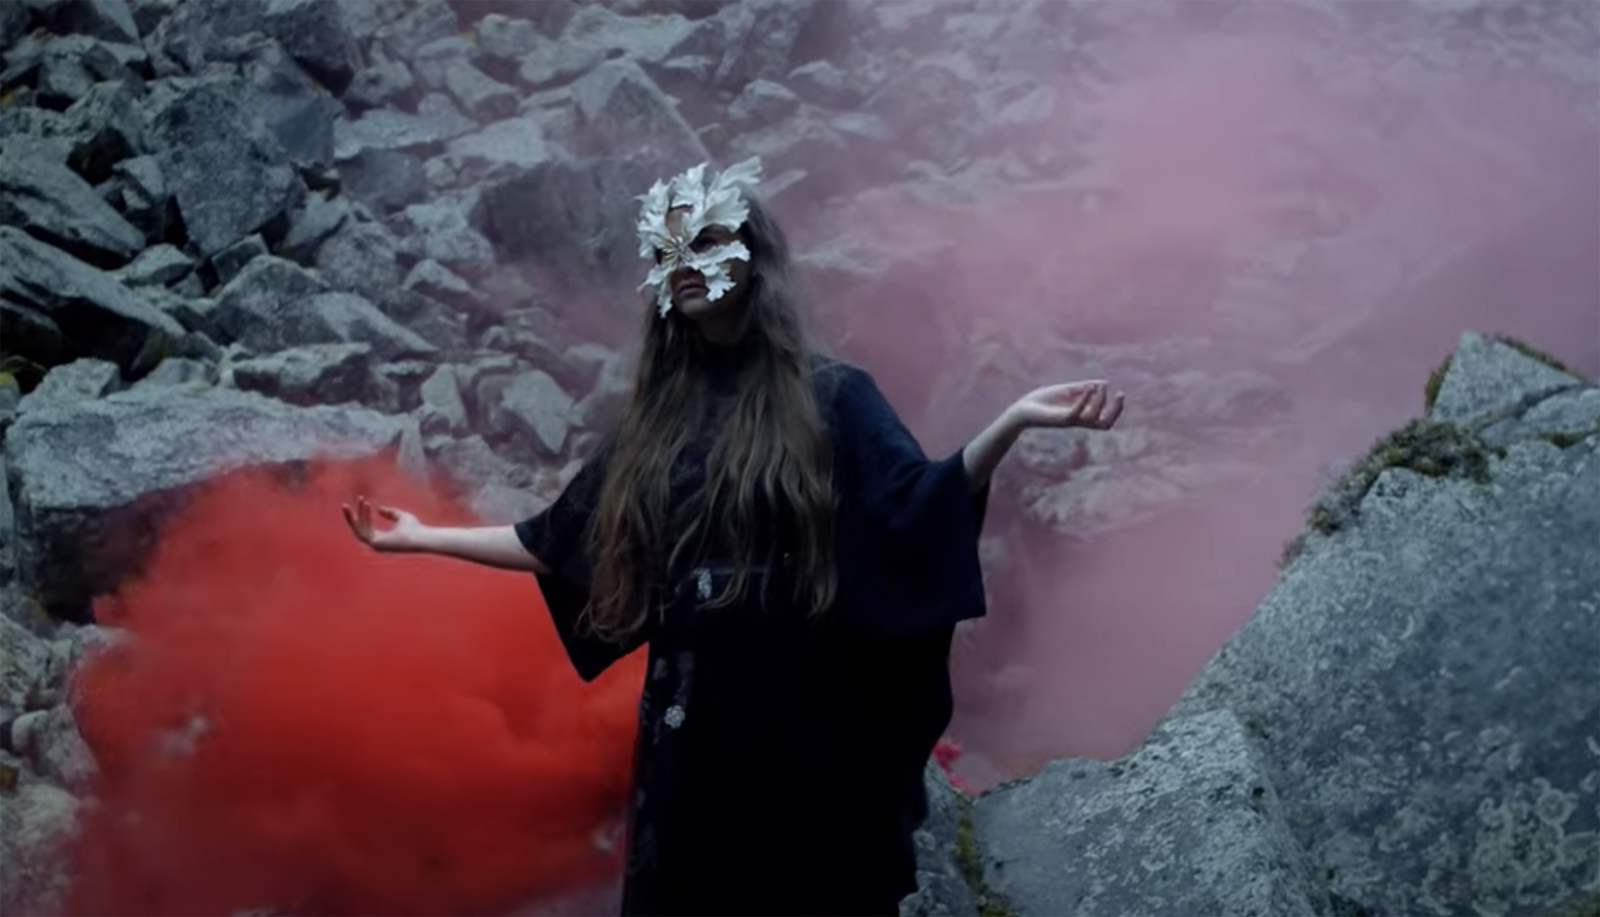 """Synne Sanden wearing """"The Lonely Beast III"""" mask in the """"Skeleton"""" music video I Photo by Simon Matthew Valentine I Dress by Tonje Plur"""